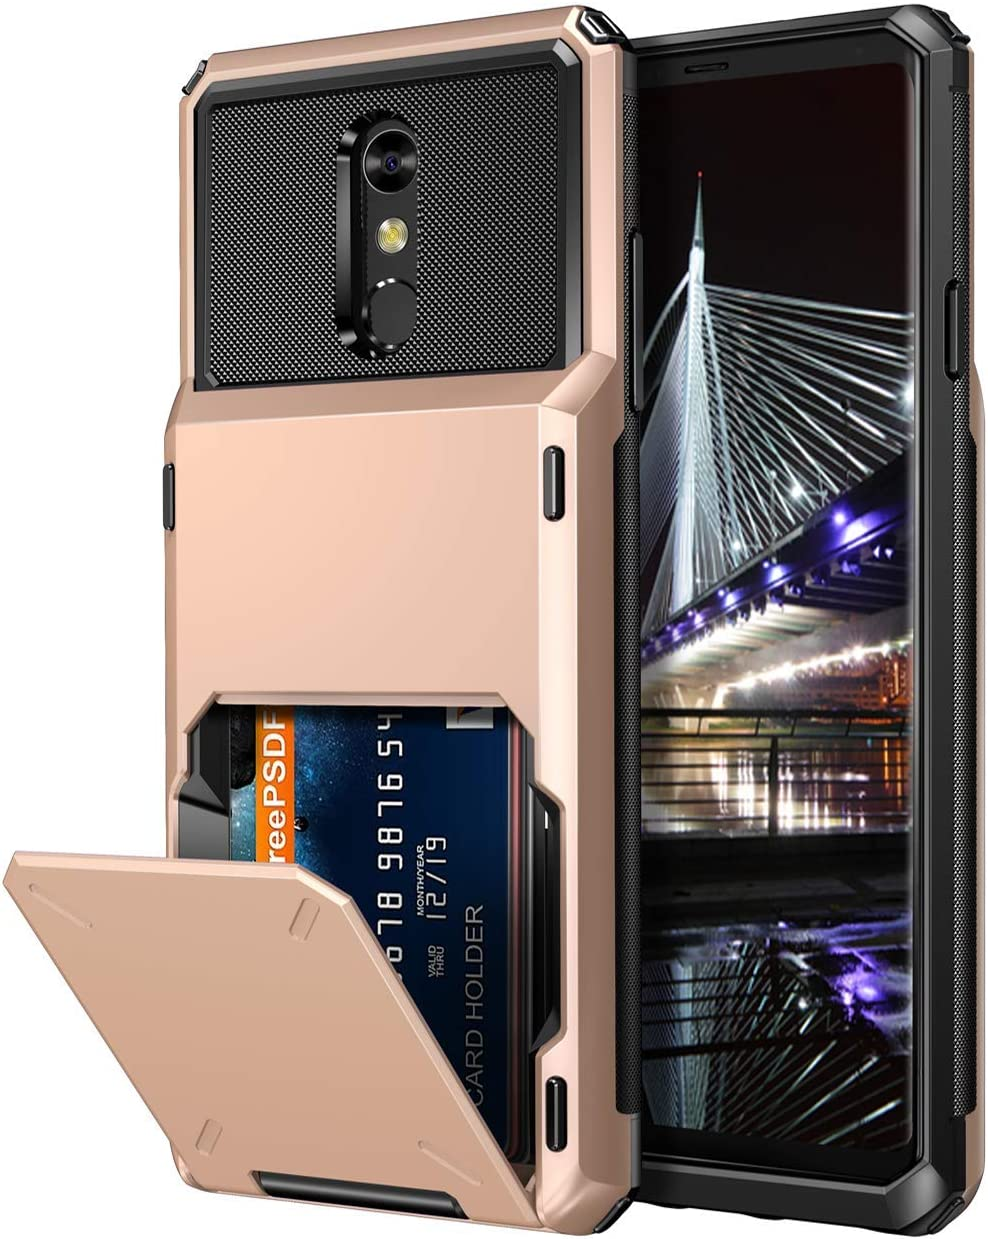 Vofolen Case for LG Stylo 4 Case Wallet [4-Card Pocket] Credit Card Holder ID Slot Anti-scratch Dual Layer Protective Bumper Rubber Armor Non-slip Hard Shell Cover Case for LG Stylo 4 4 Plus Rose Gold